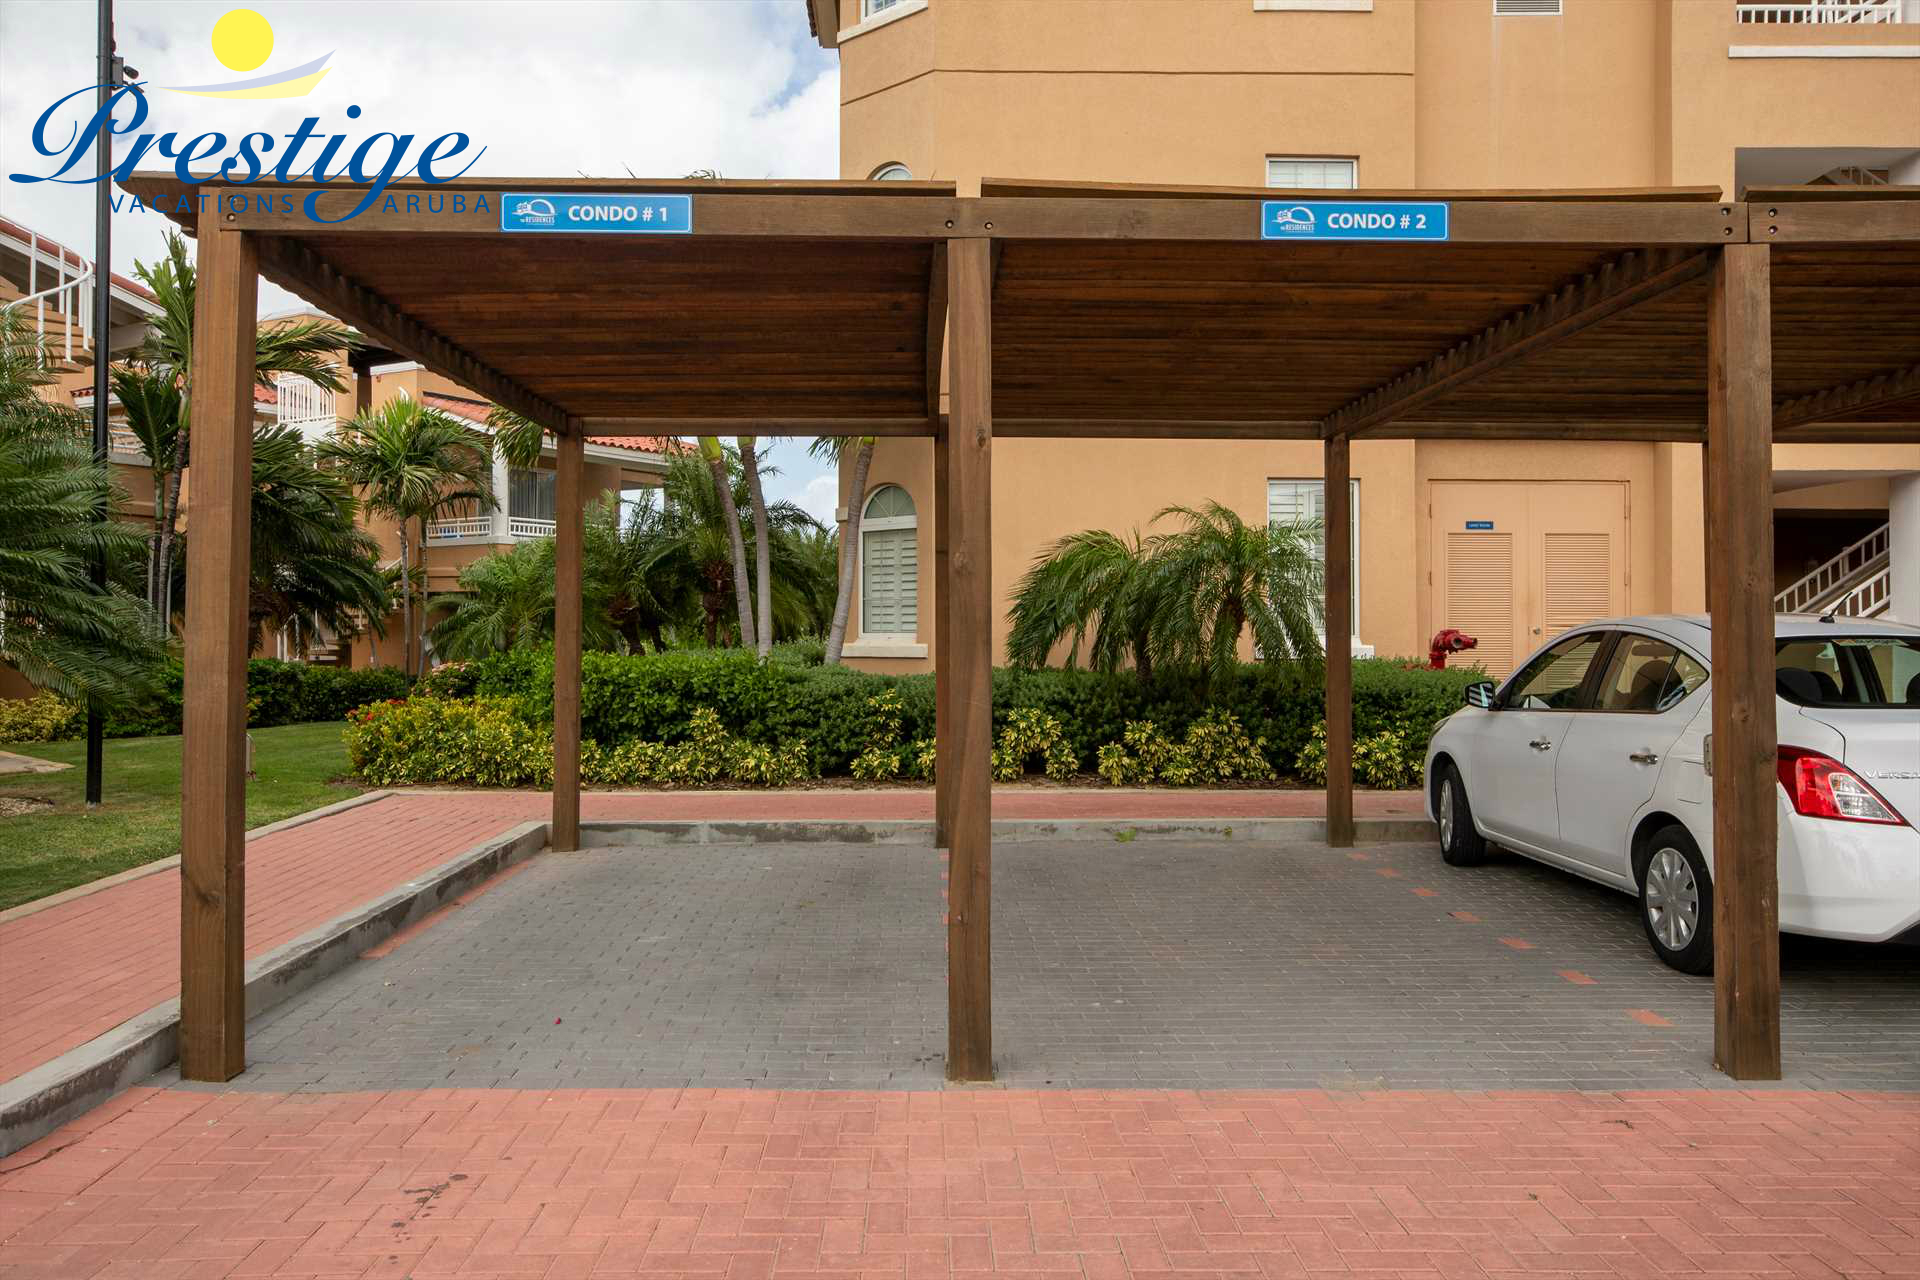 Your designated parking space in front of the building, numbered: Condo 1